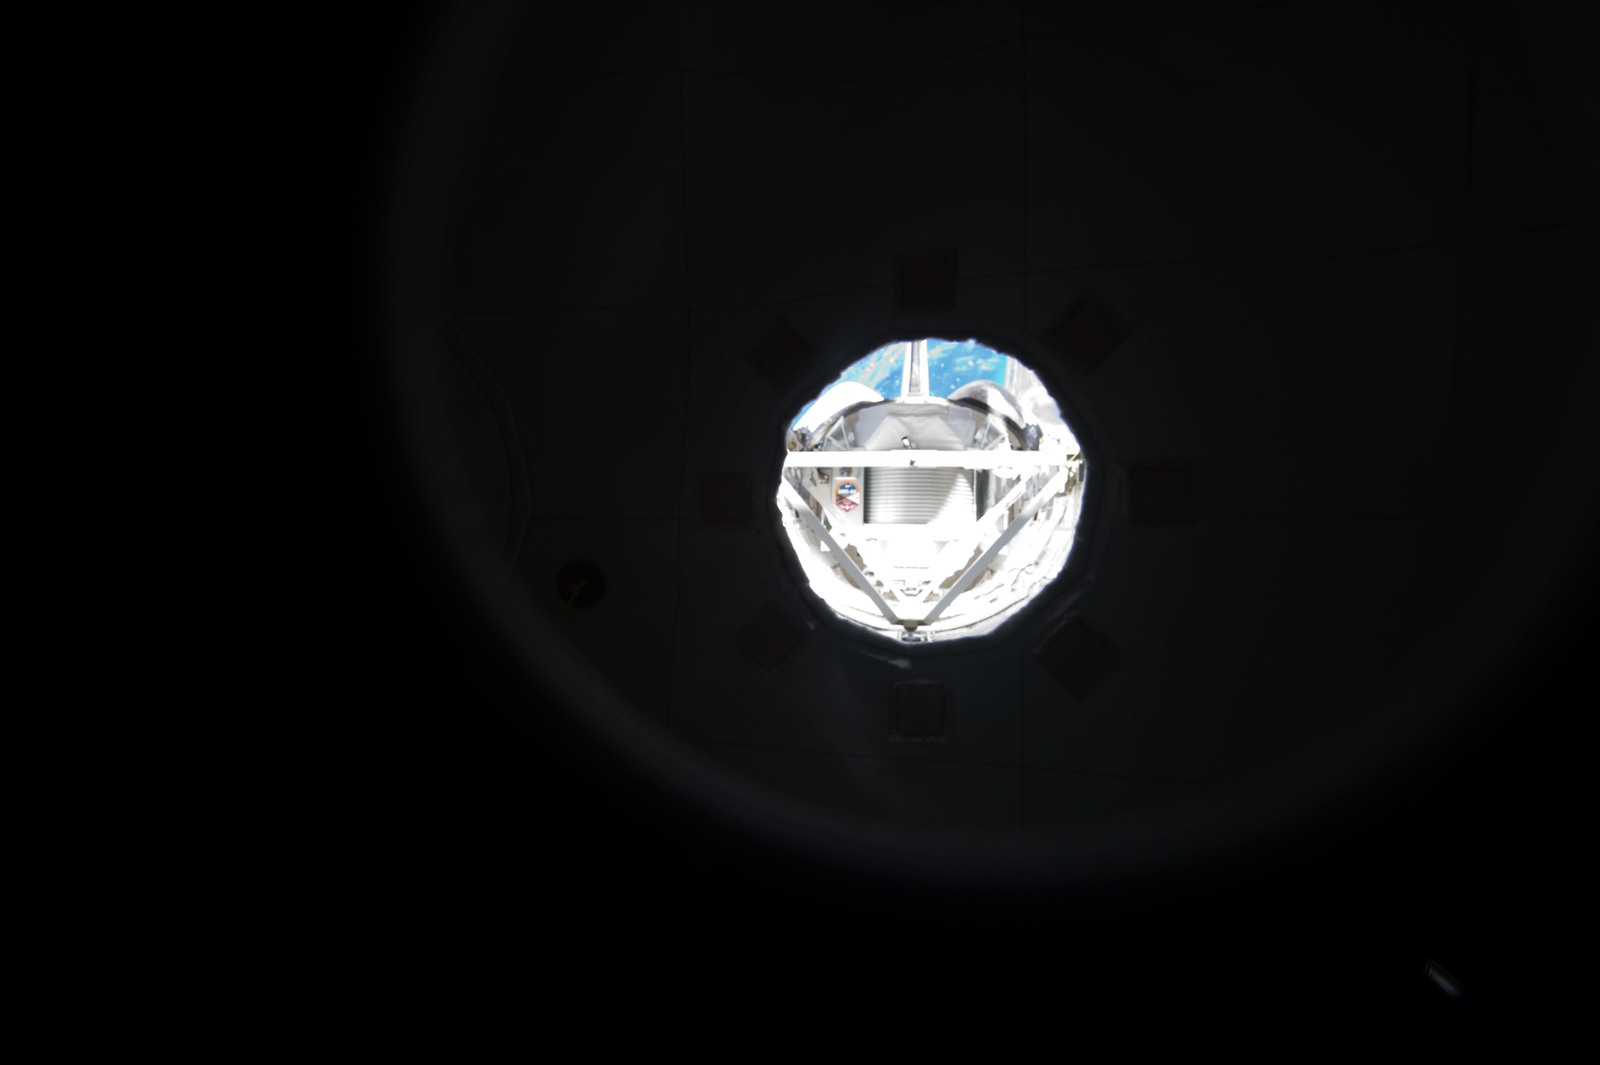 S134E007361 - STS-134 - View of AMS-2 stowed in the Endeavour Payload Bay